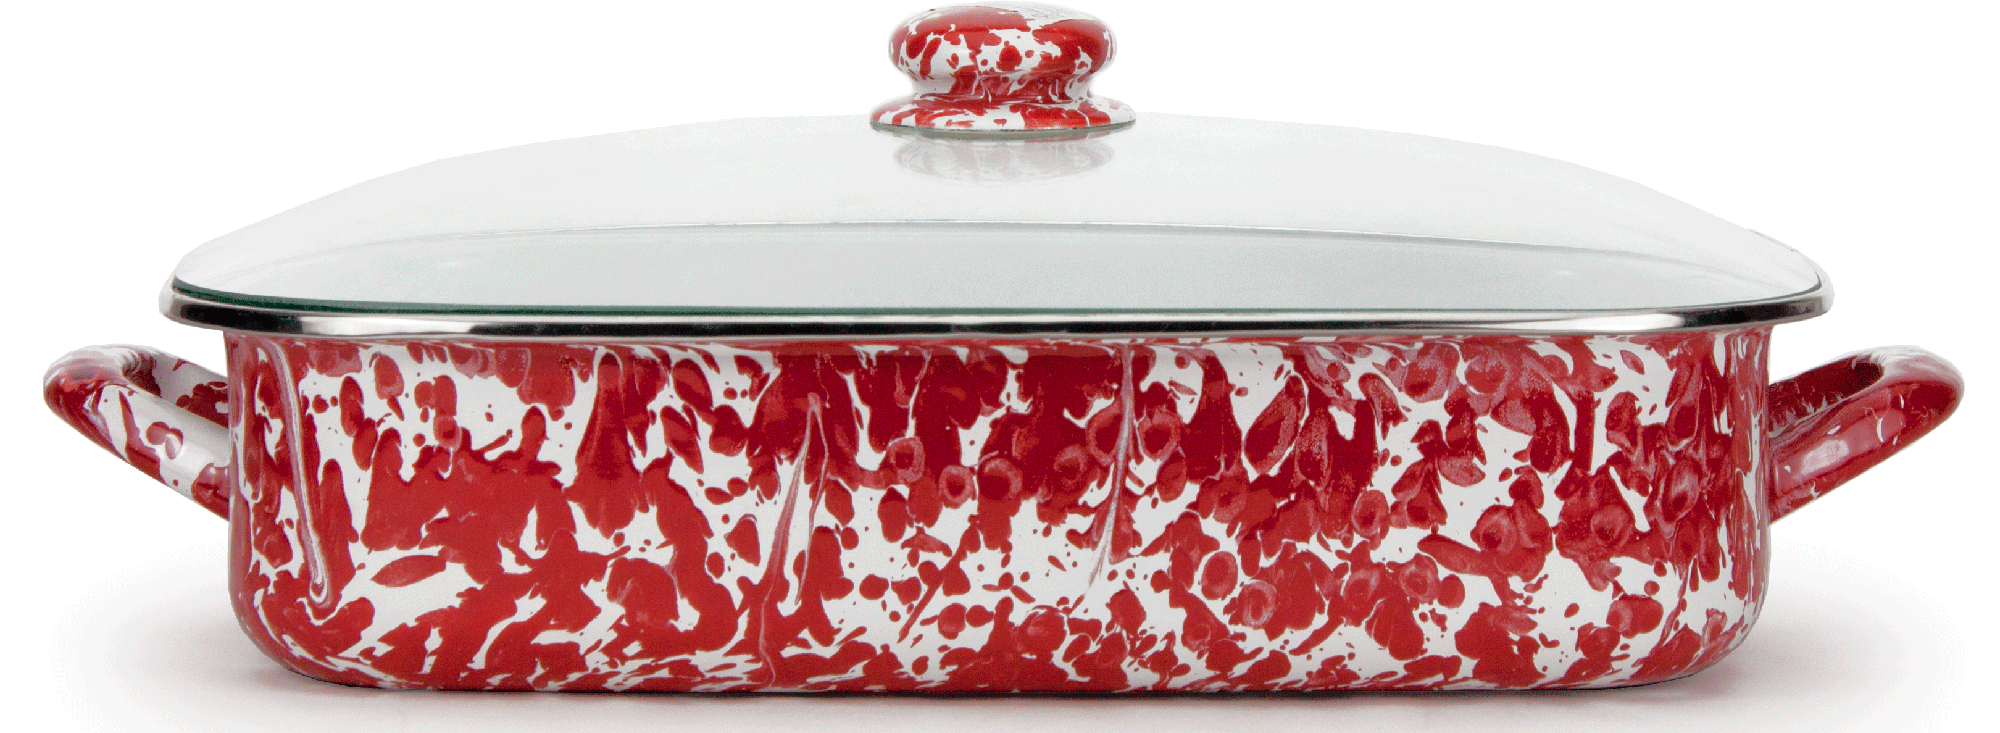 RD15 Red Swirl Lasagna Pan Set